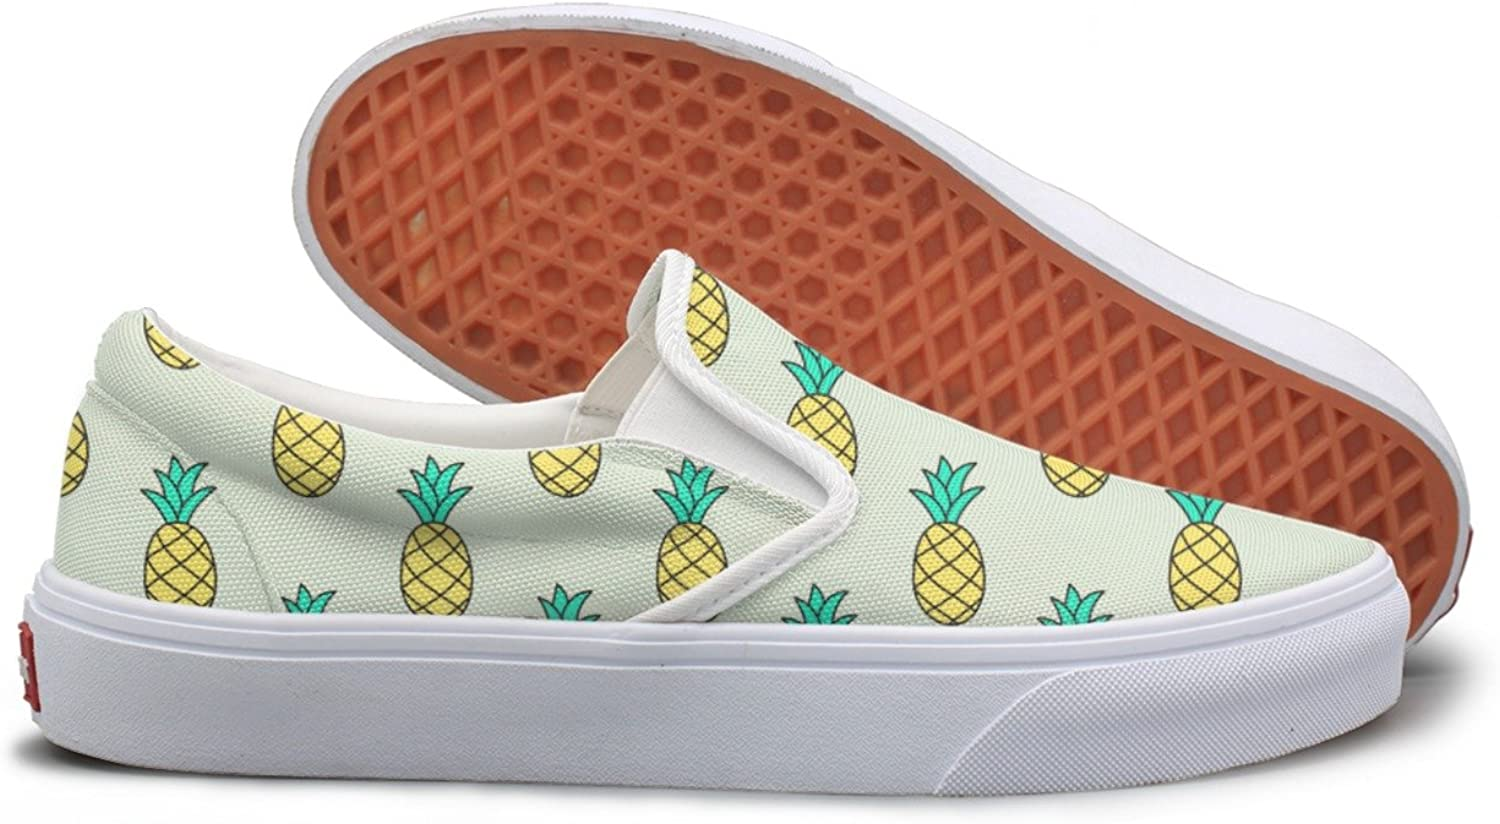 SEERTED Hand-Drawn Pattern with Pineapple Slip On Canvas shoes for Women